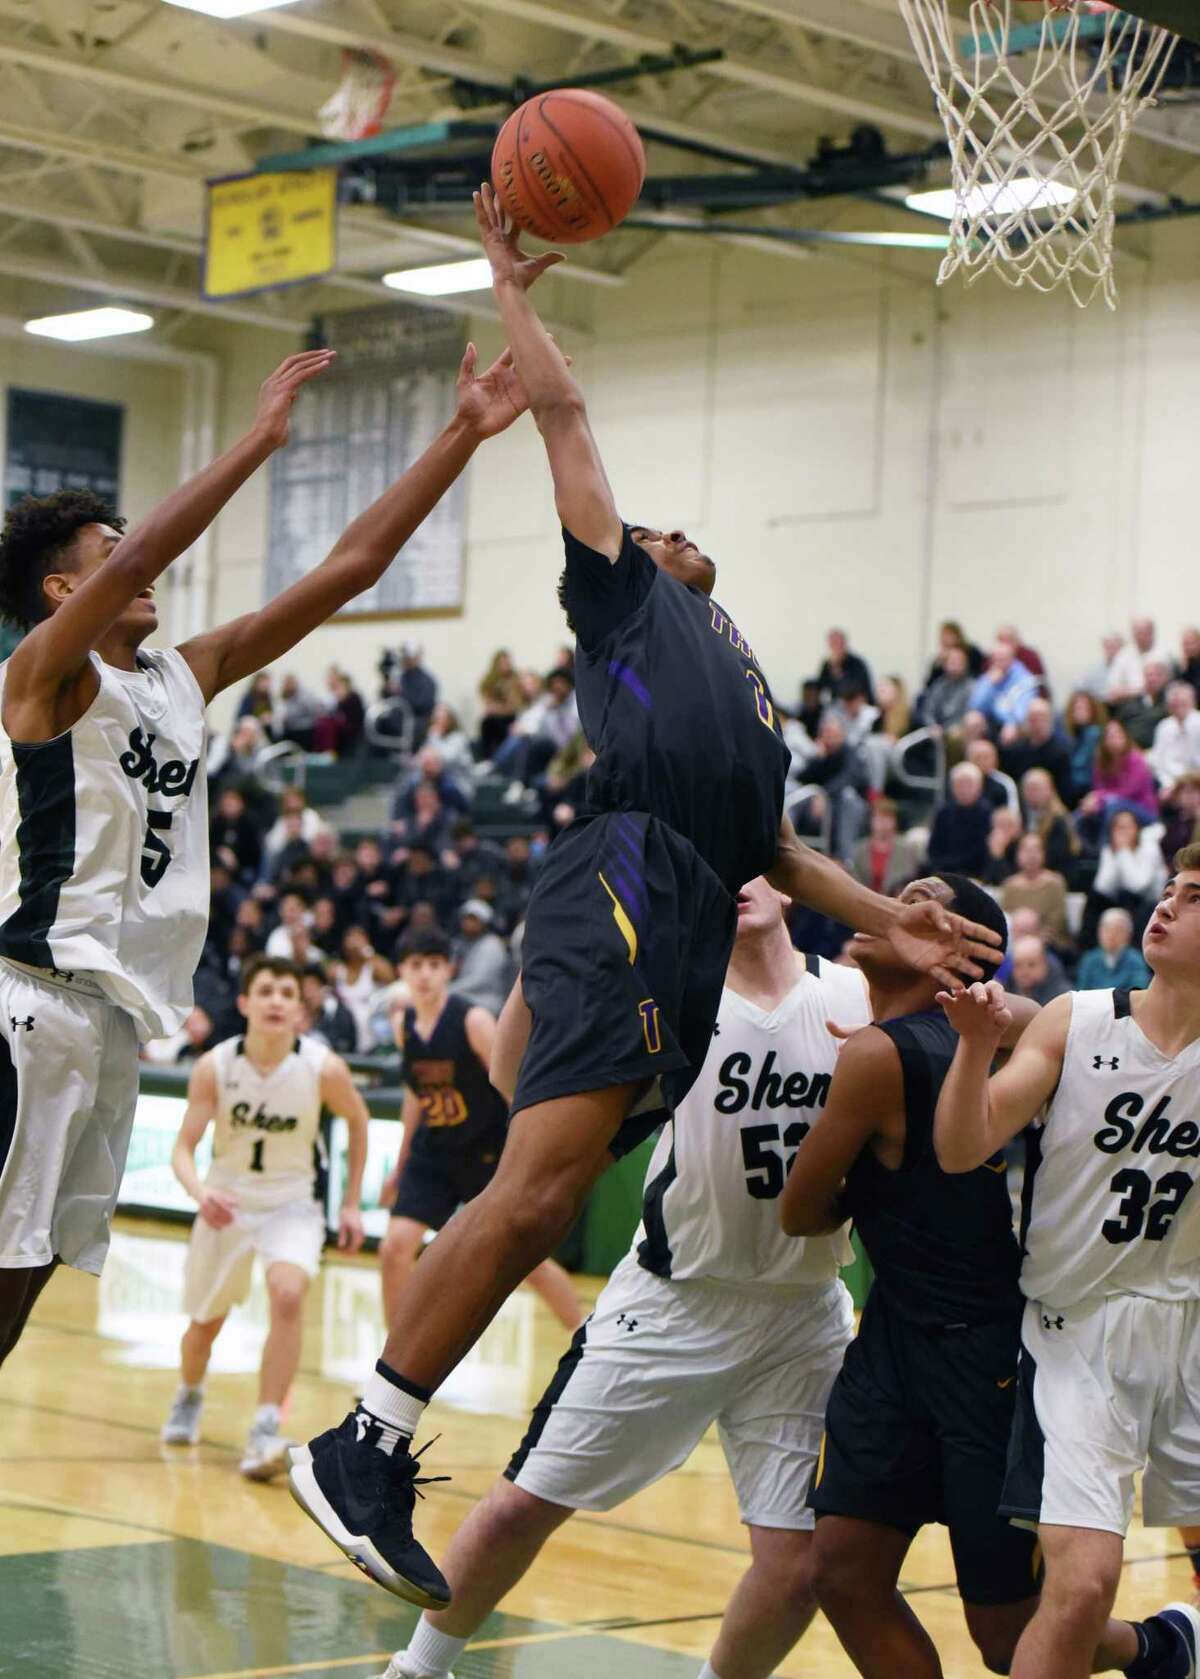 Troy's Makal Cruel jumps up toward the net during a game against Shenendehowa Friday, Jan. 4, 2019 at Shenendehowa High School in Shenendehowa, N.Y. (Phoebe Sheehan/Times Union) ORG XMIT: 20045837A